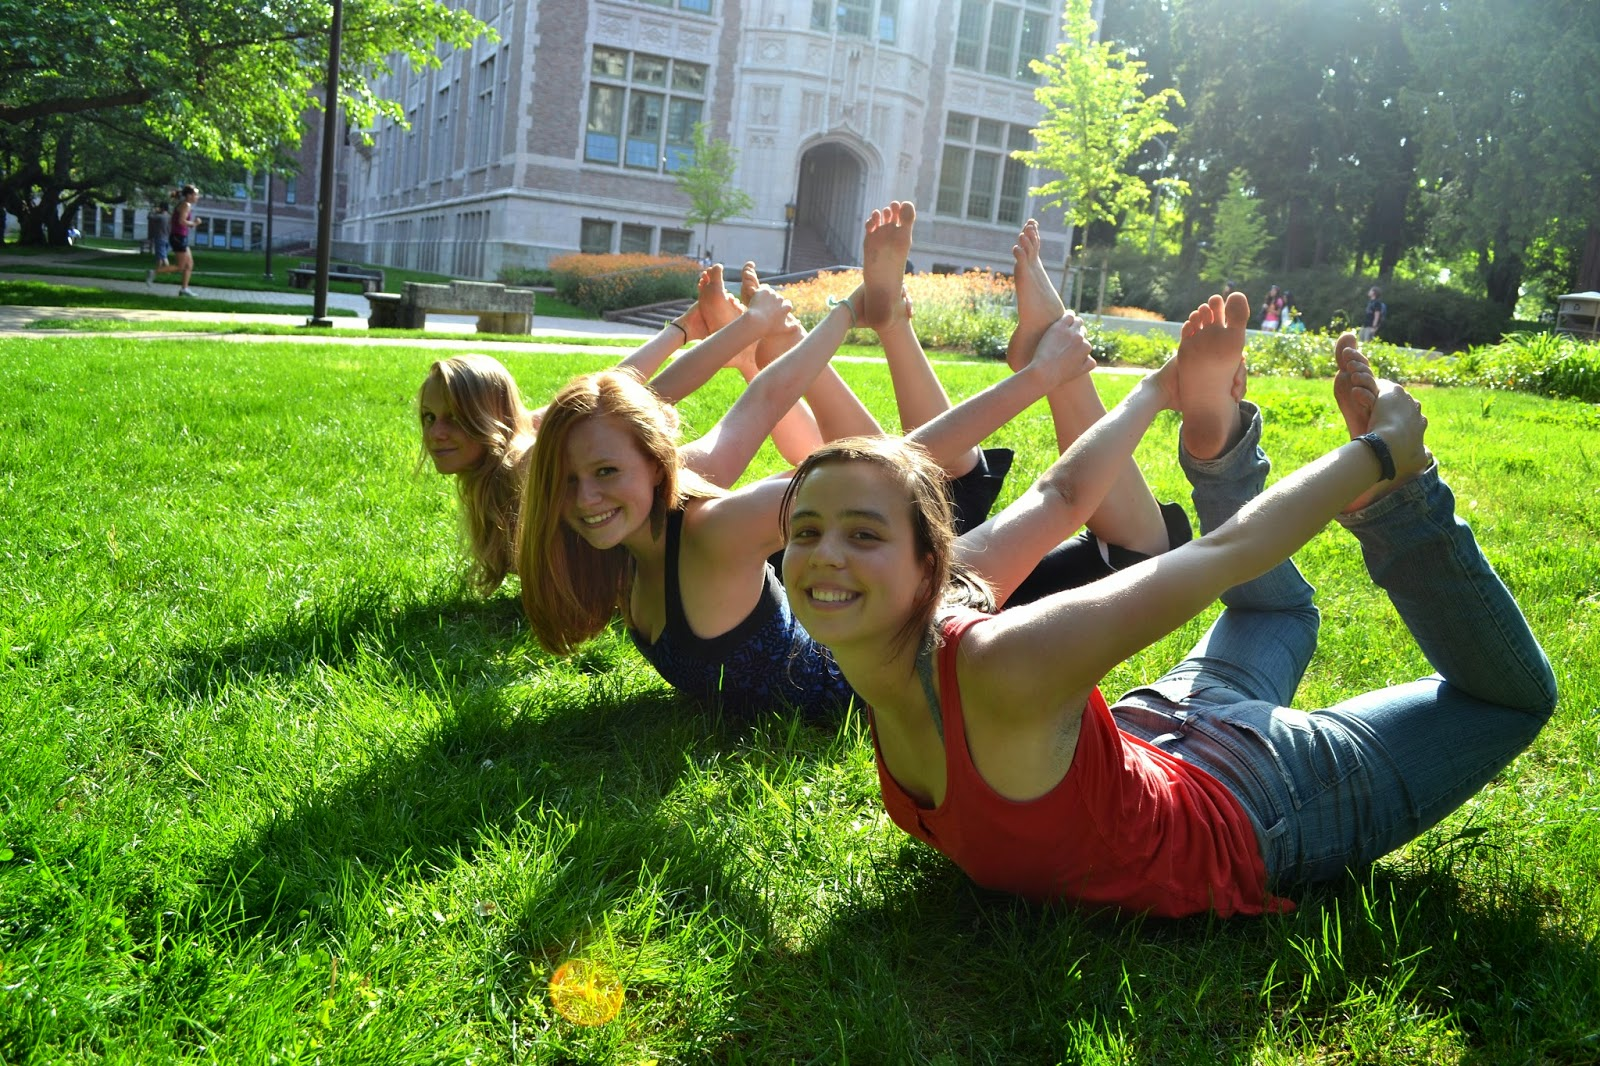 http://yogisatuw.com/2012/06/13/summer-yoga-for-uw-students/